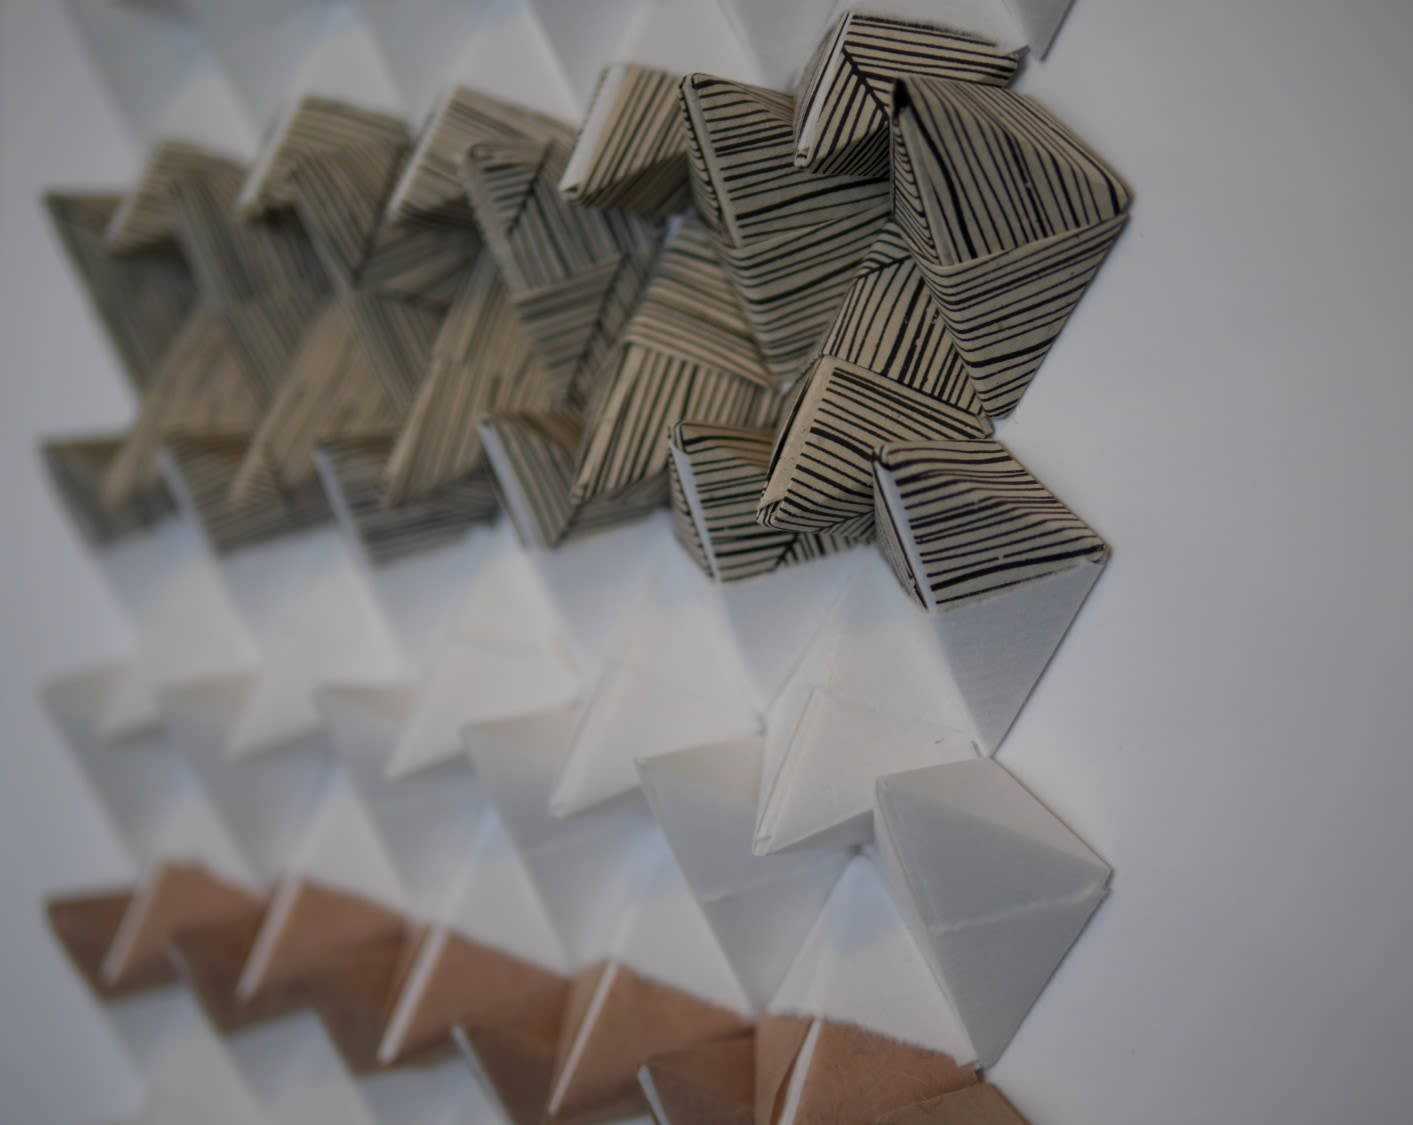 Art & Wall Decor by StudioNEA Design seen at Wescover Gallery at West Coast Craft SF 2019, San Francisco - Folded Paper Art